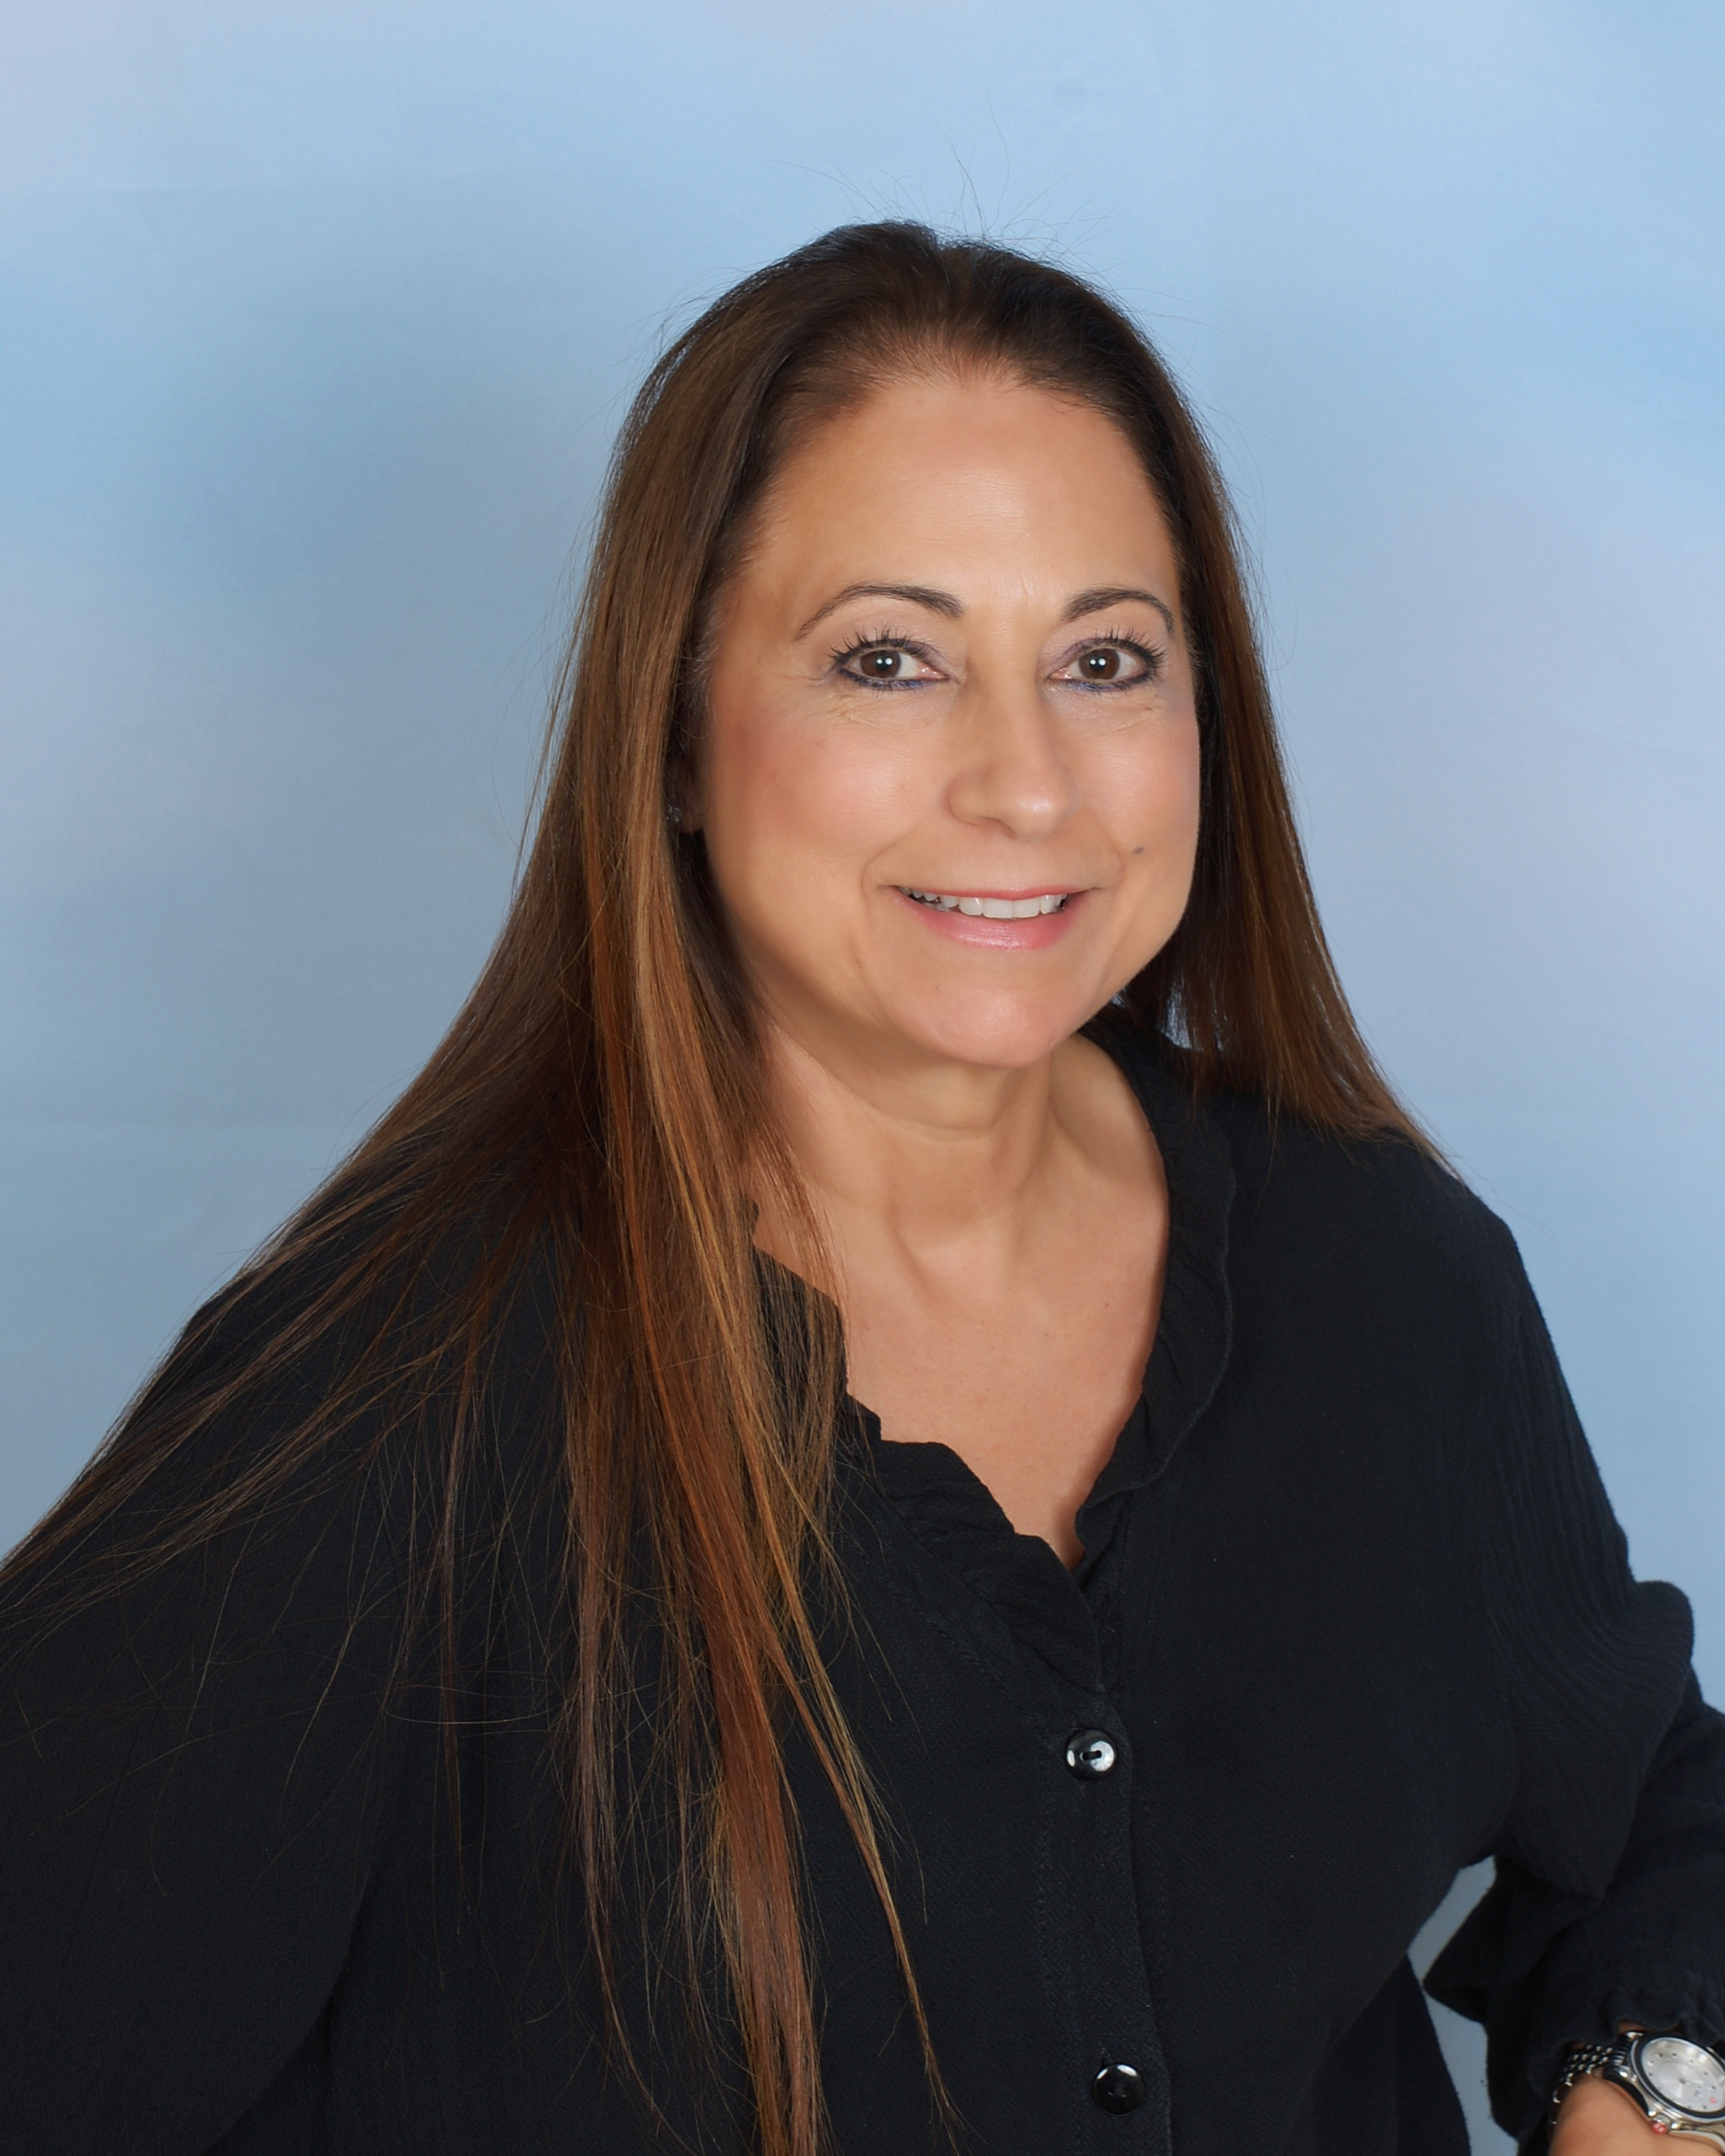 Priscilla Vargas Joins Ecolane's Business Development Team